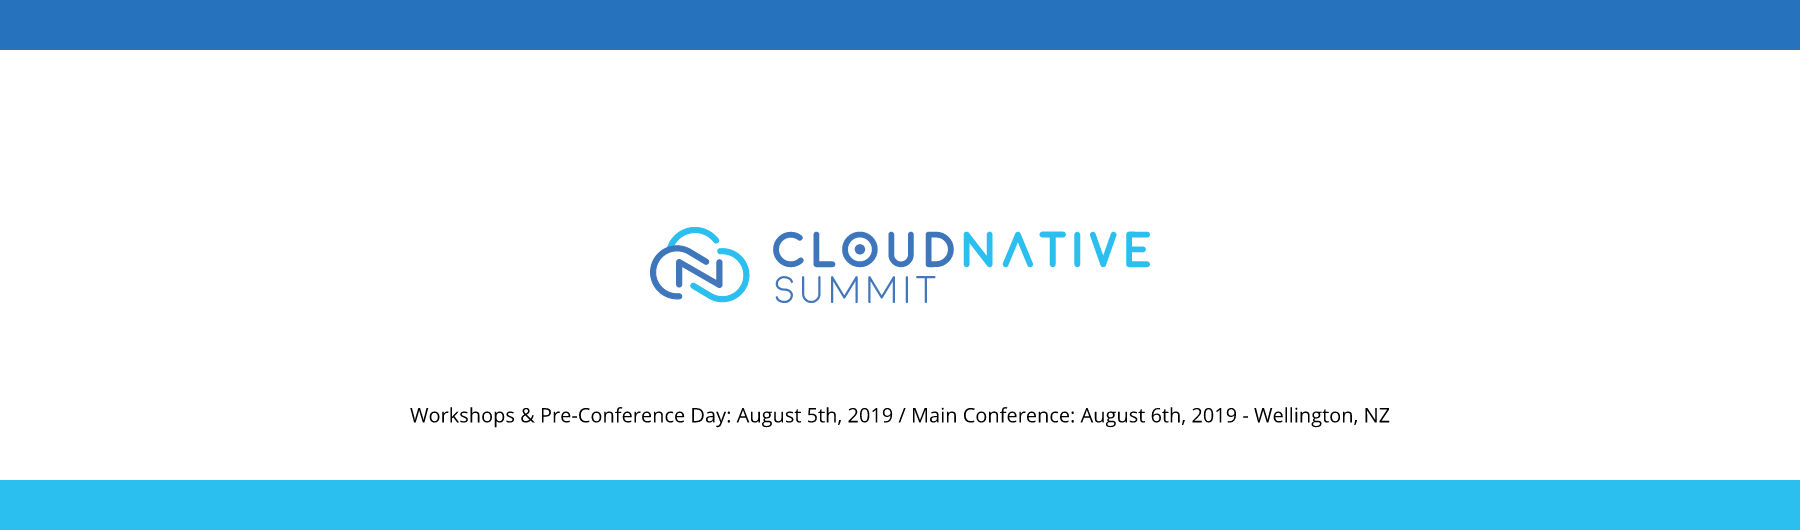 Cloud Native Summit 2019 - Wellington